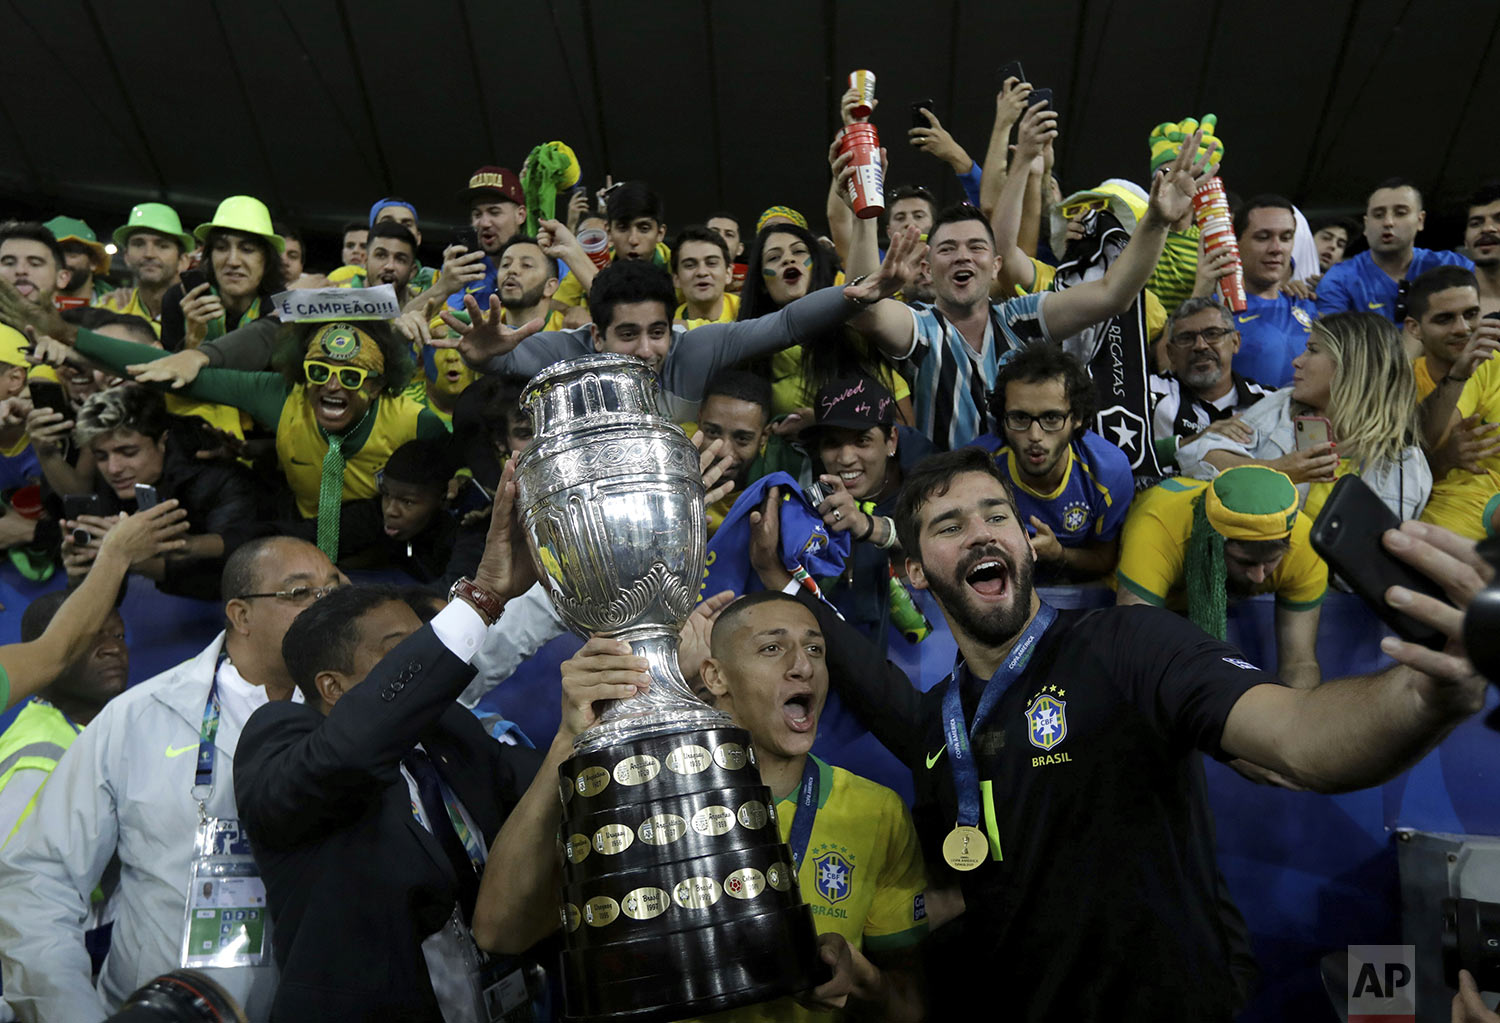 Brazil's Richarlison holds the Copa America trophy as goalkeeper Alisson takes their selfie with fans after winning the final Copa America soccer match against Peru at Maracana stadium in Rio de Janeiro, Brazil, Sunday, July 7, 2019. Brazil won 3-1. (AP Photo/Leo Correa)